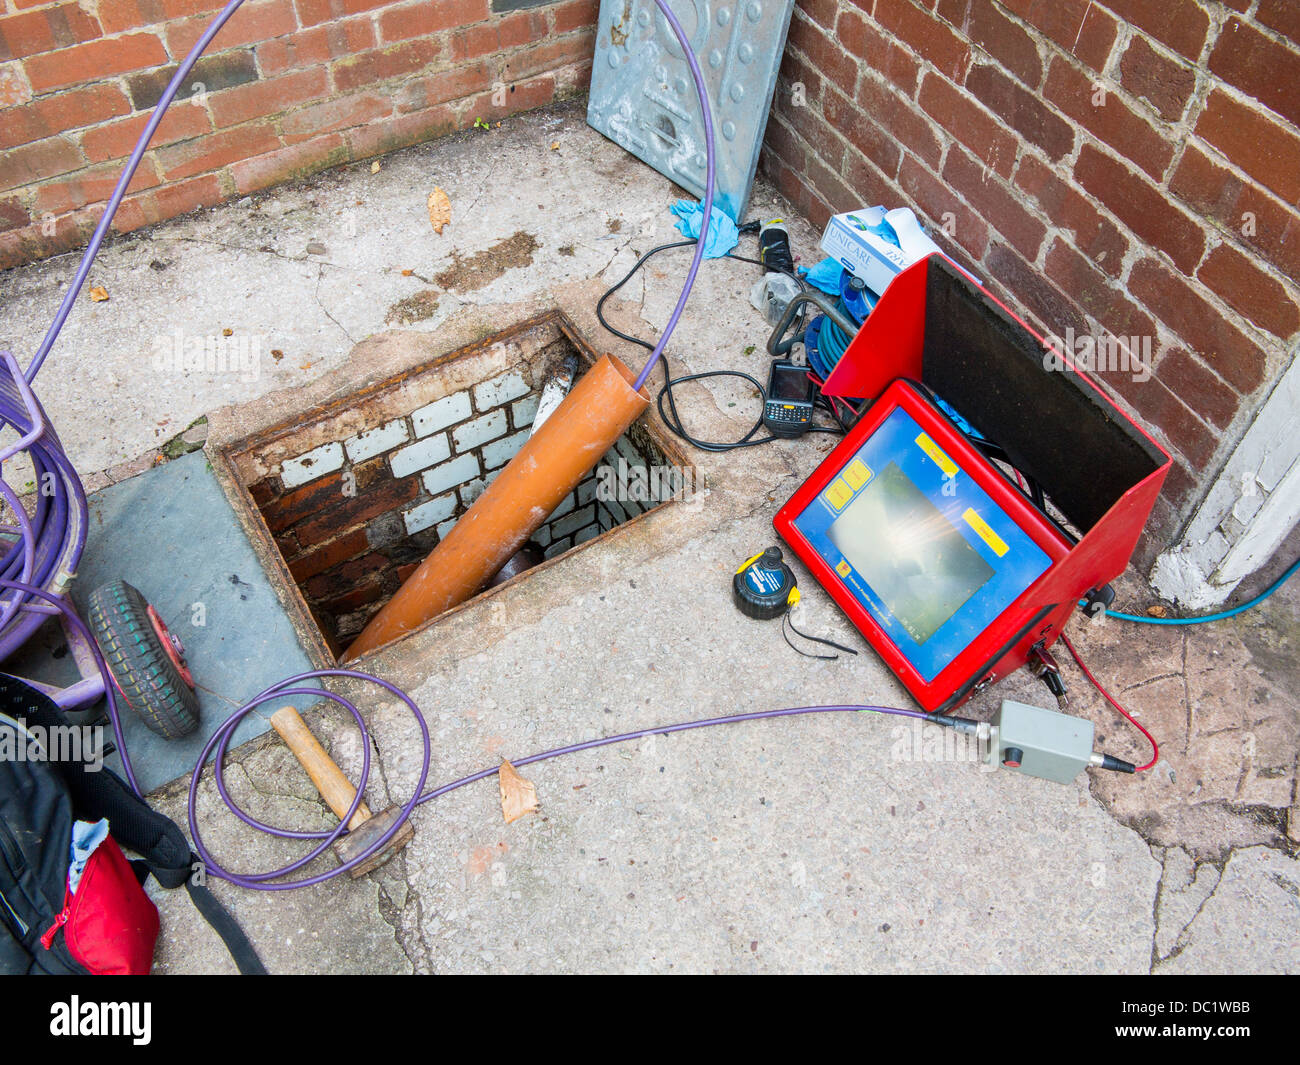 Blocked sewer drain investigation using remote camera - Stock Image